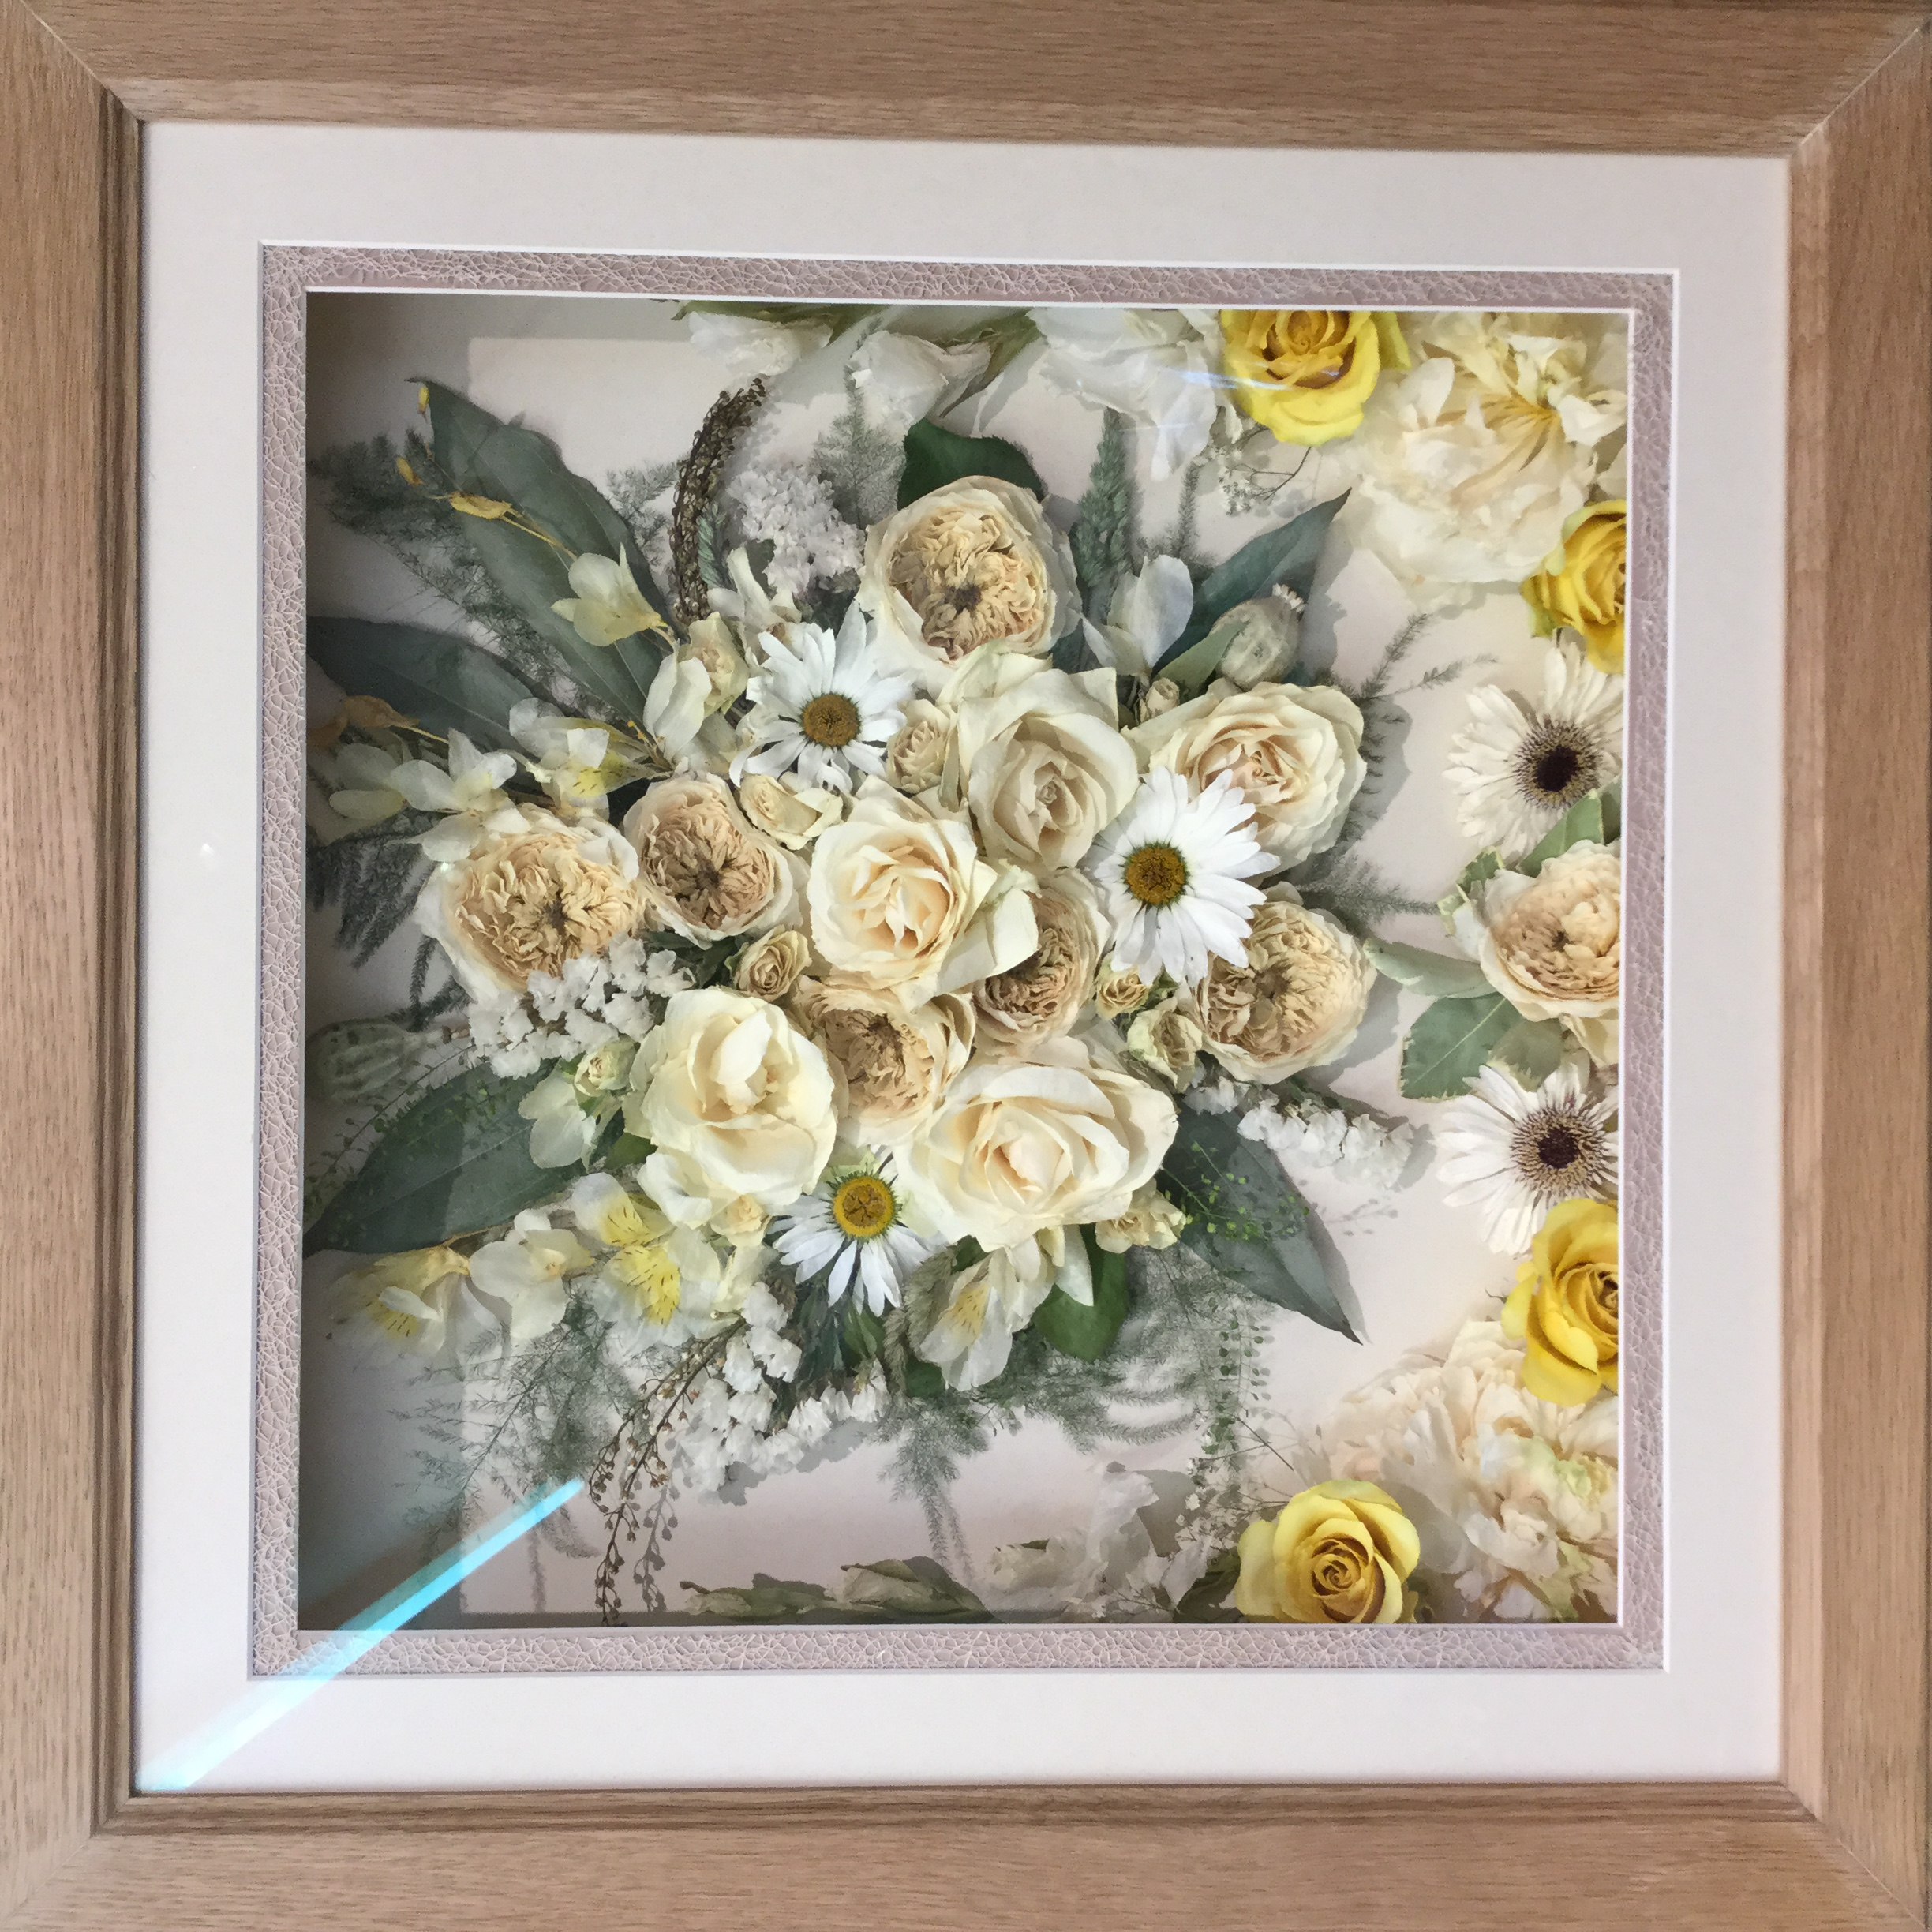 Curo Gallery Flower Preservation Framing Sheffied South Yorkshire